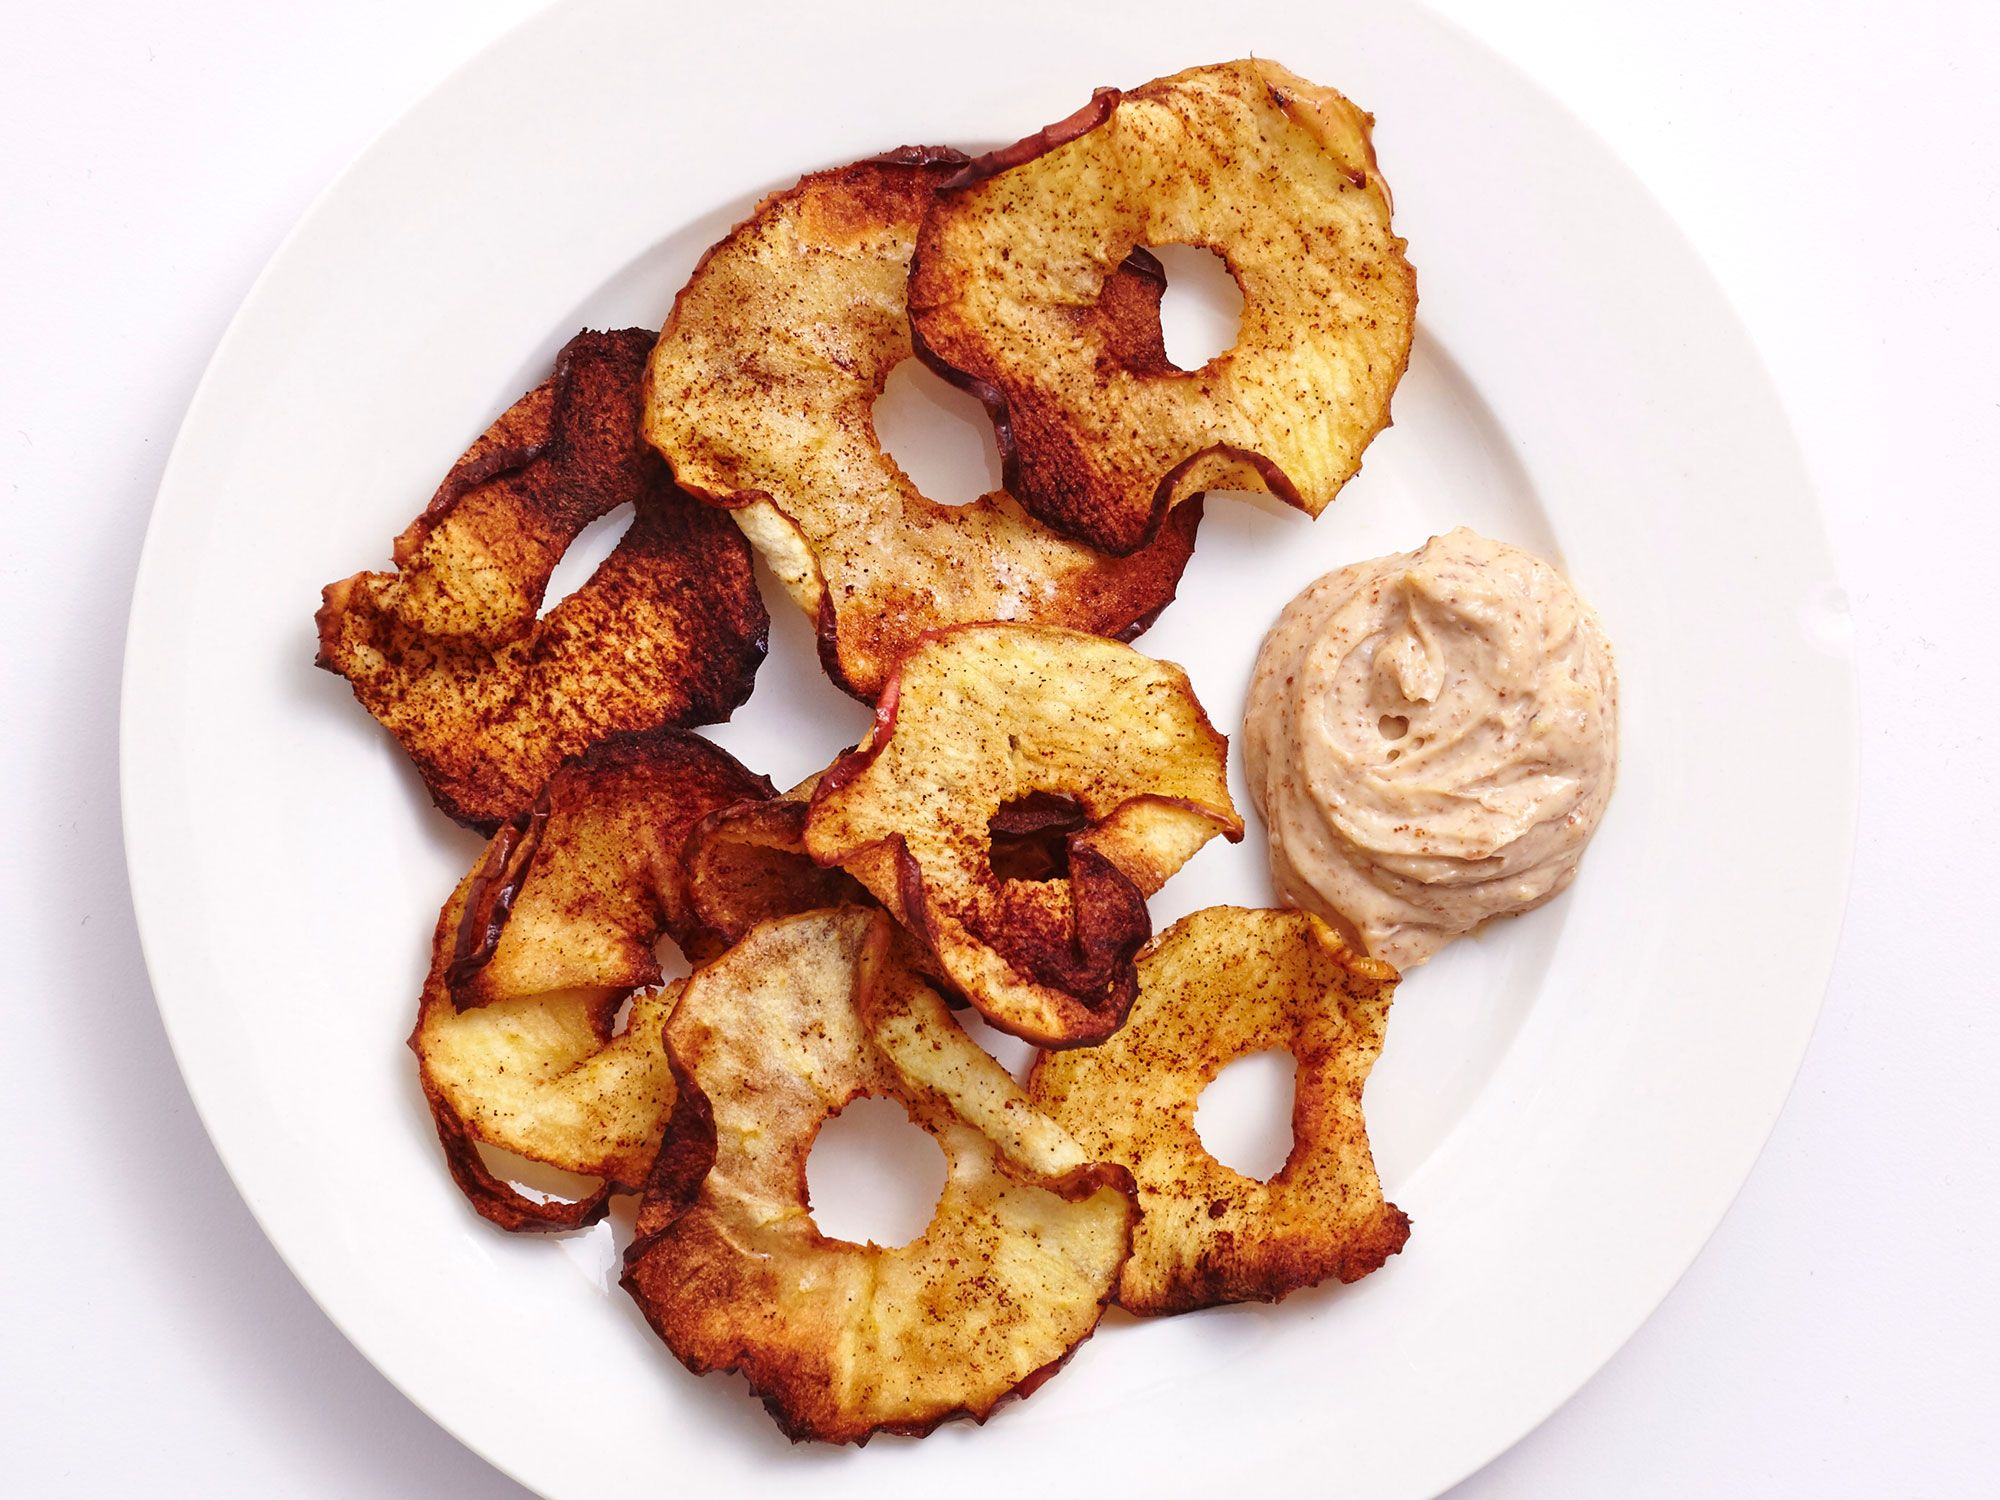 Make These Easy AirFried Cinnamon Apple Chips With Almond